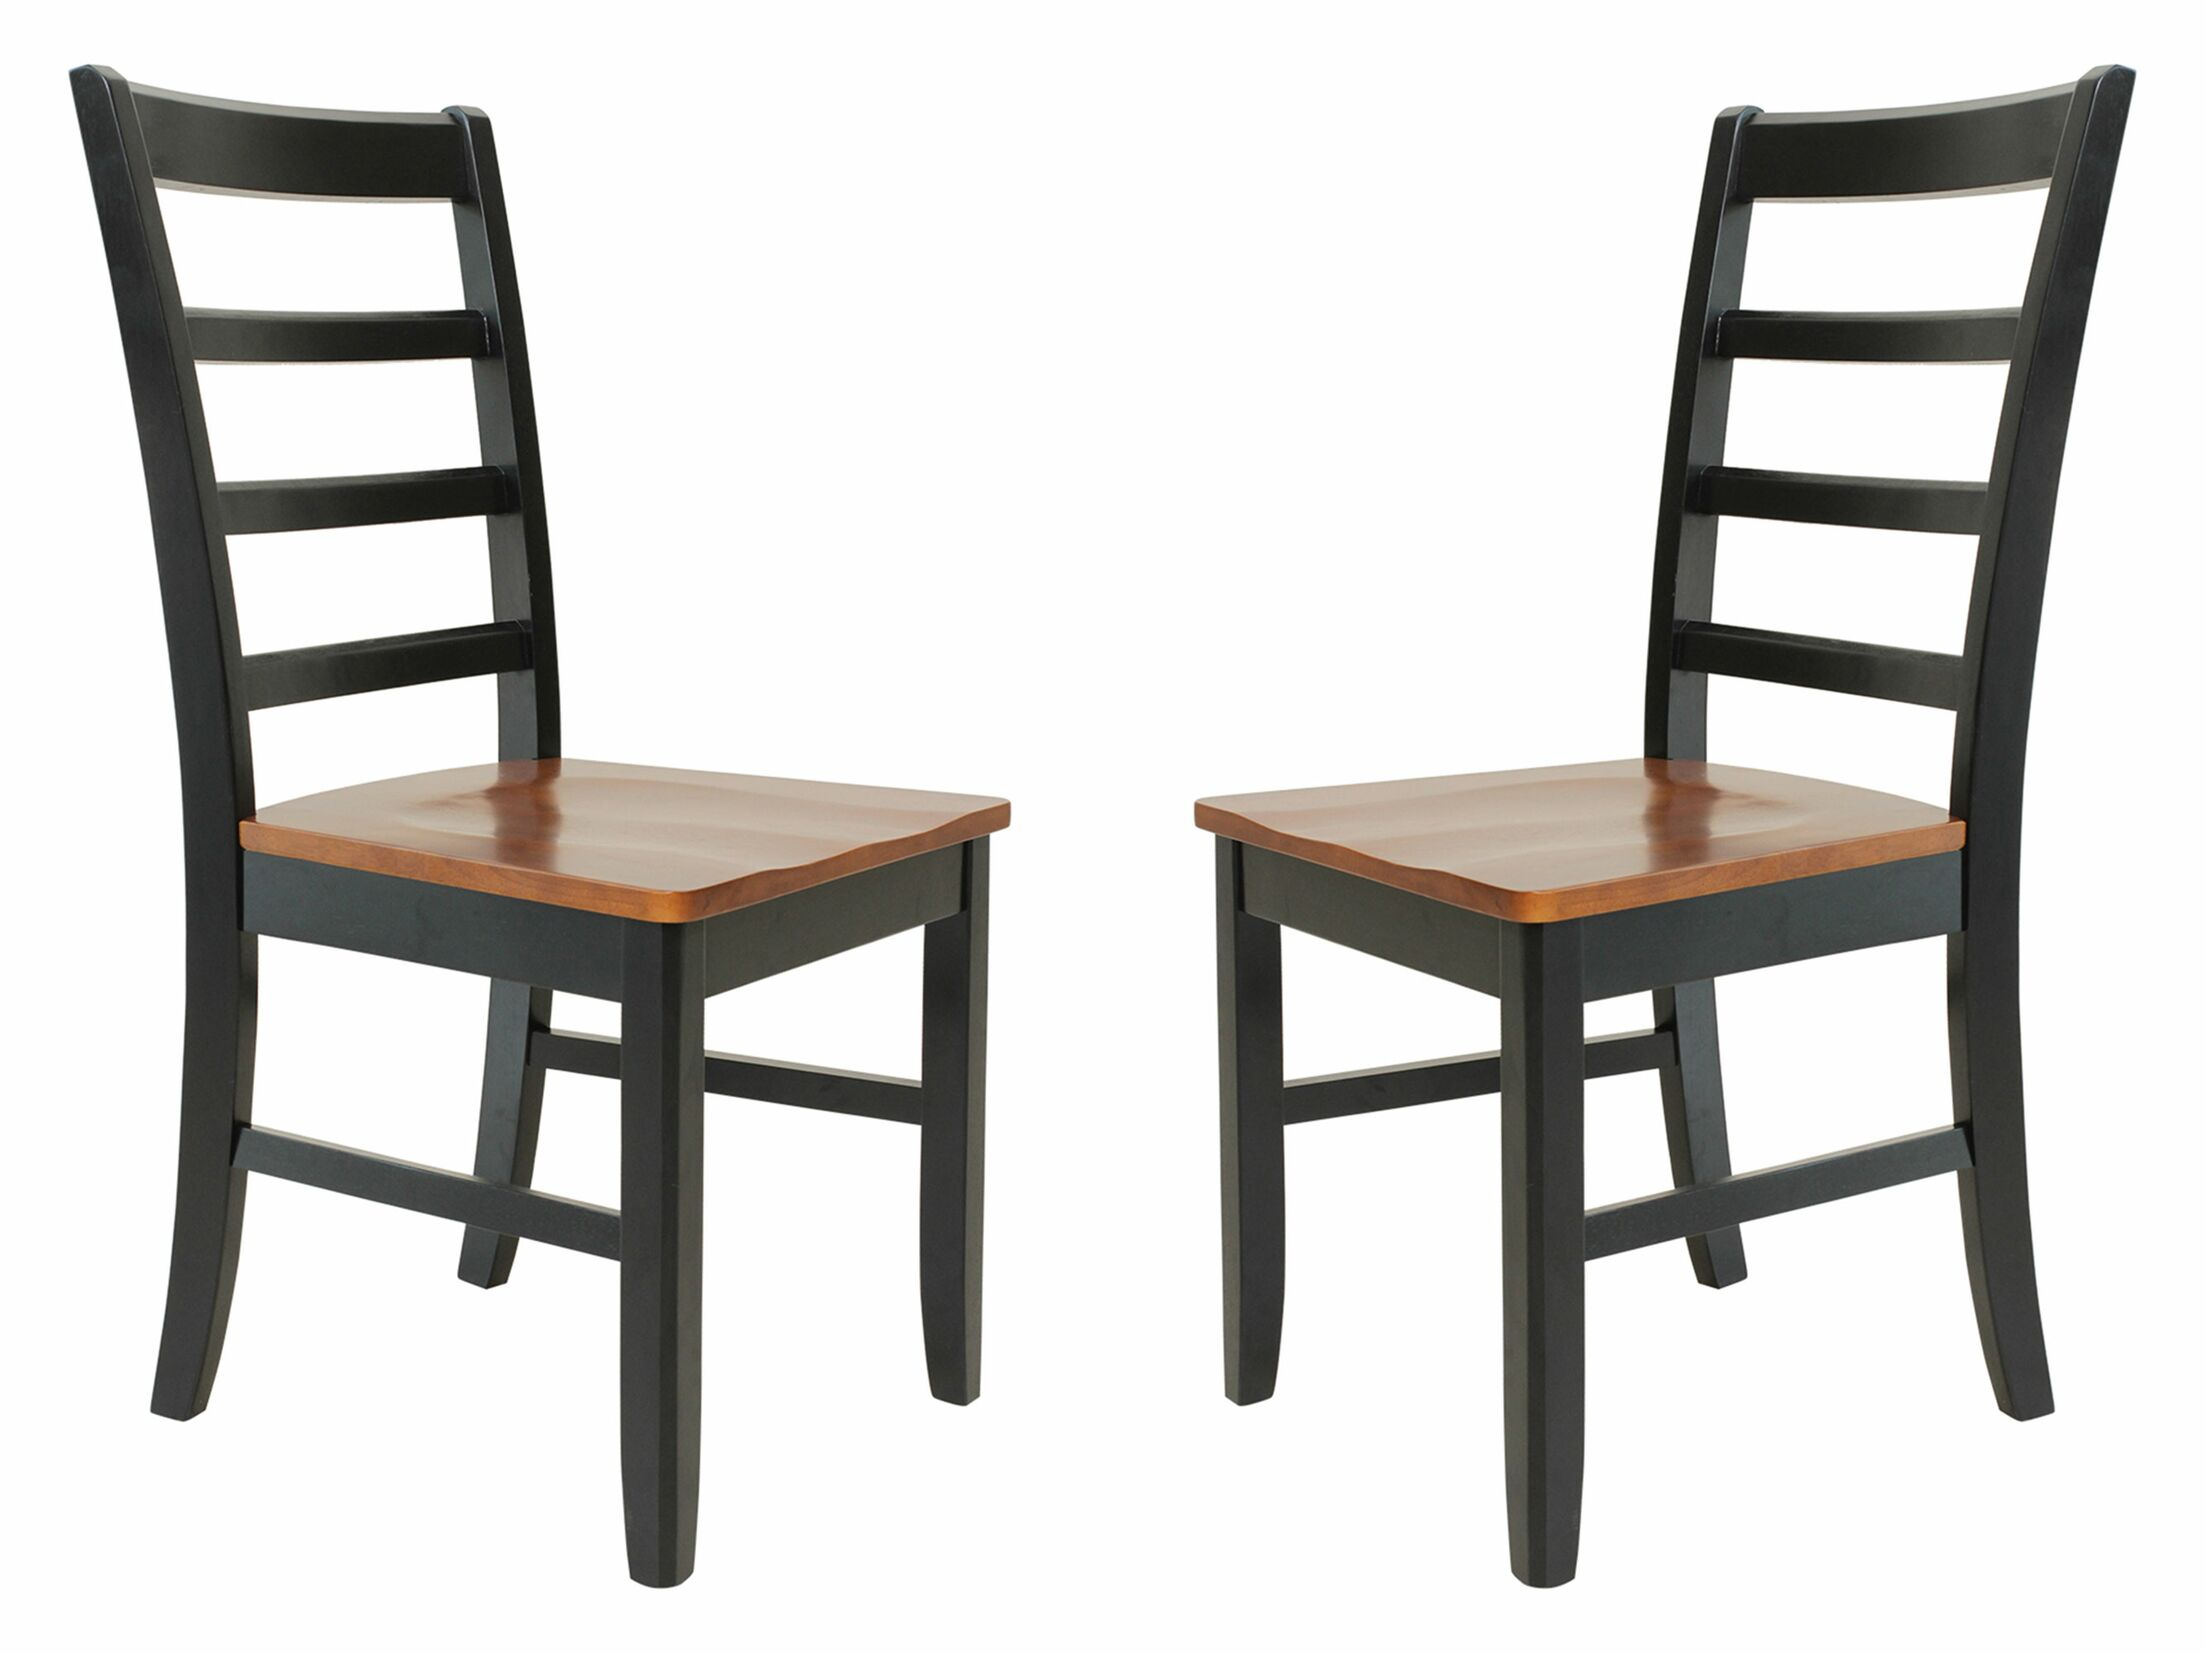 Two Sturdy Solid Wood Dining Chair Finish: Black / Saddle Brown